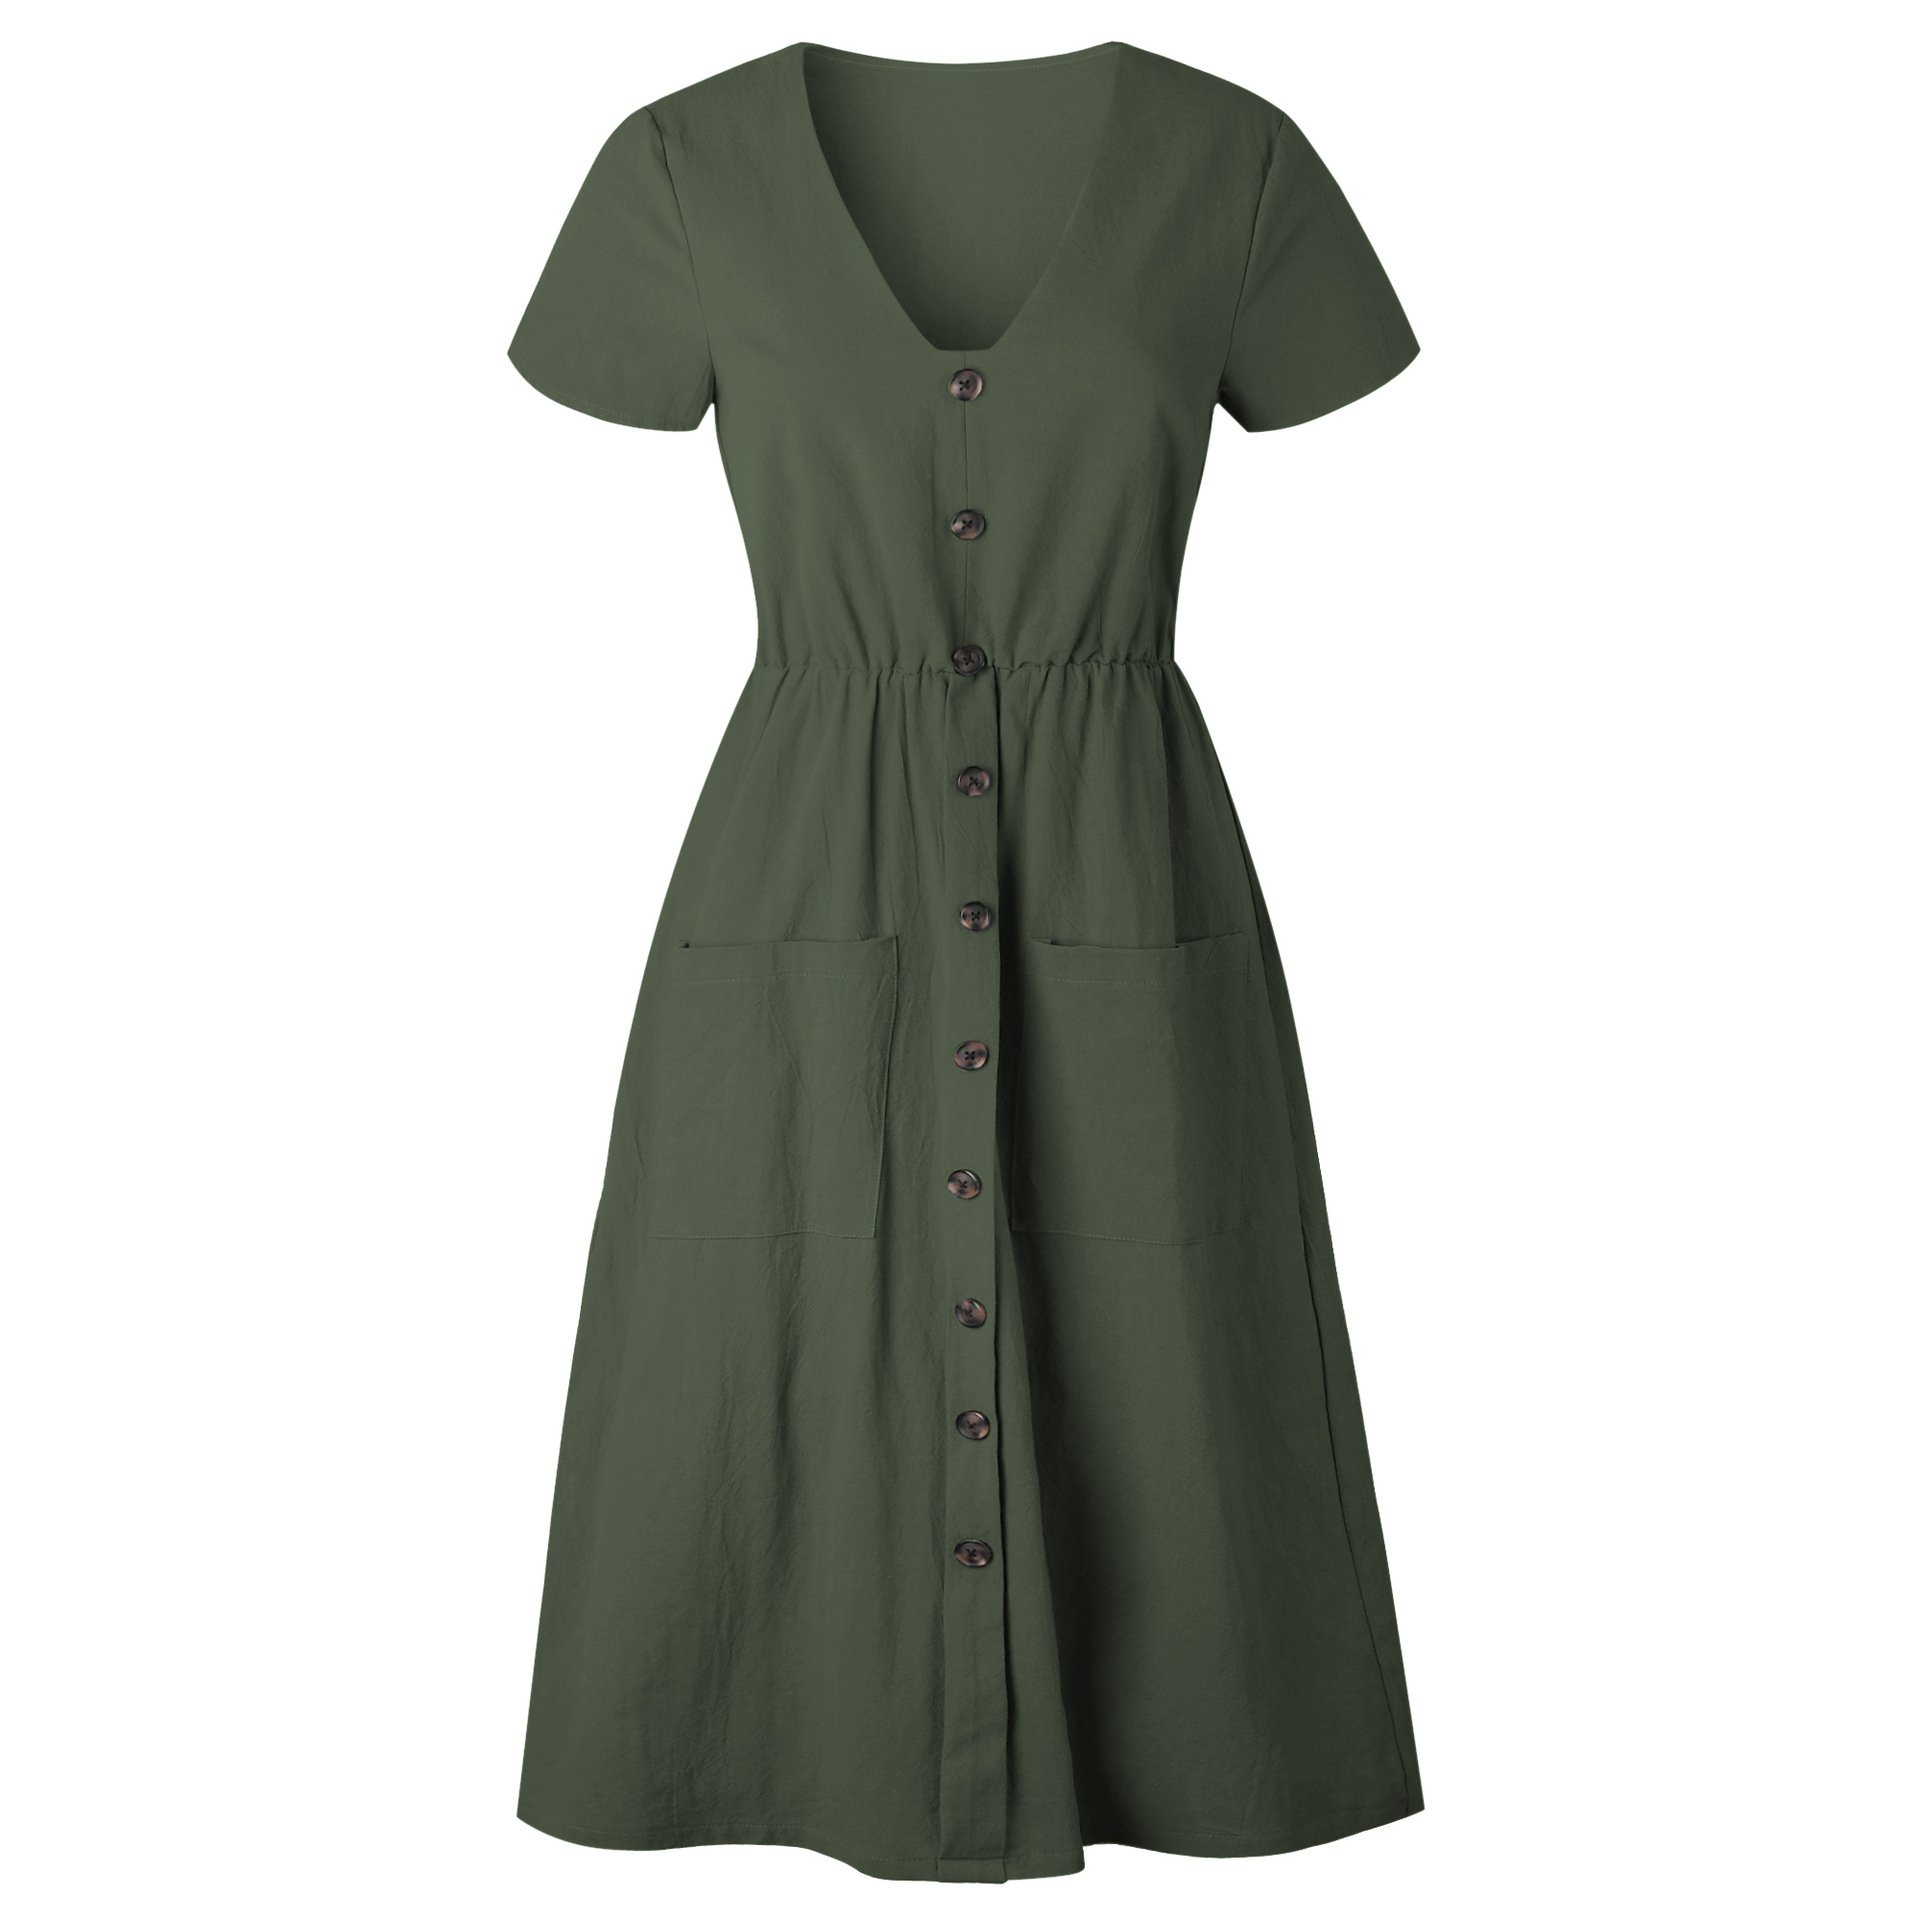 Women\'s Causal Solid V Neck Short Sleeve Button Down Swing Midi Dress with Pockets Green X-Large